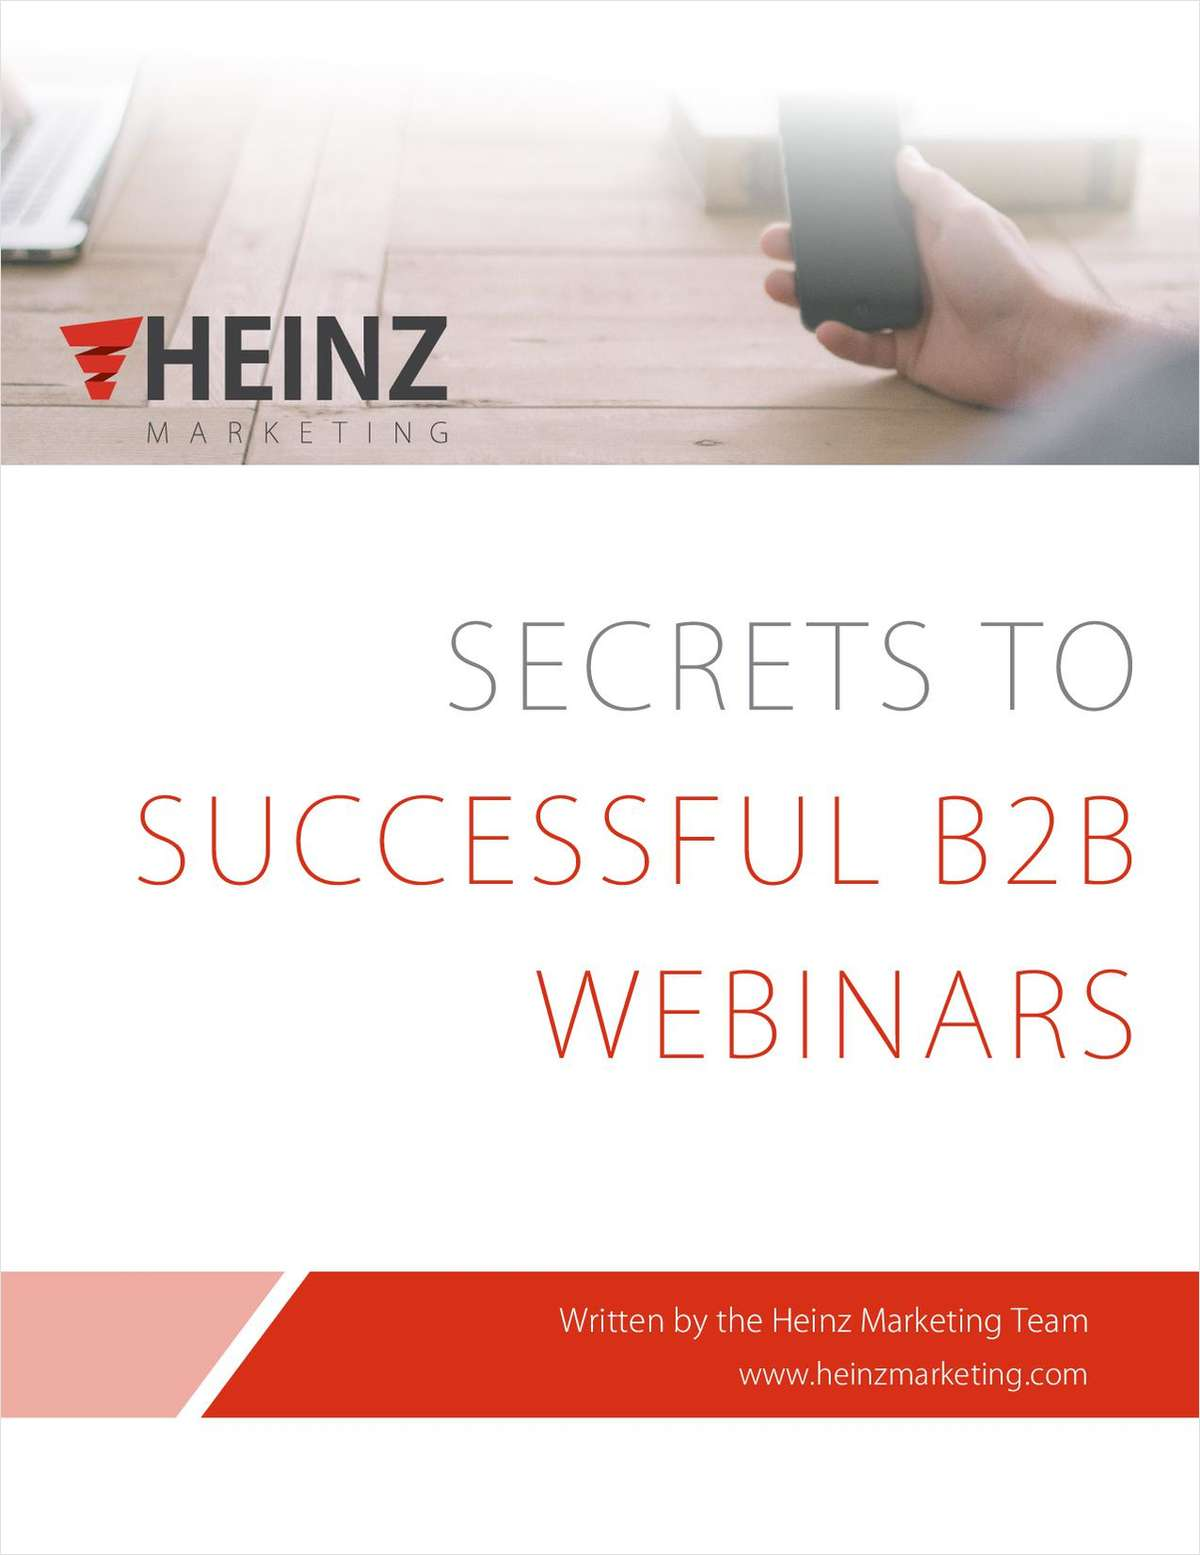 Secrets to Successful B2B Webinars